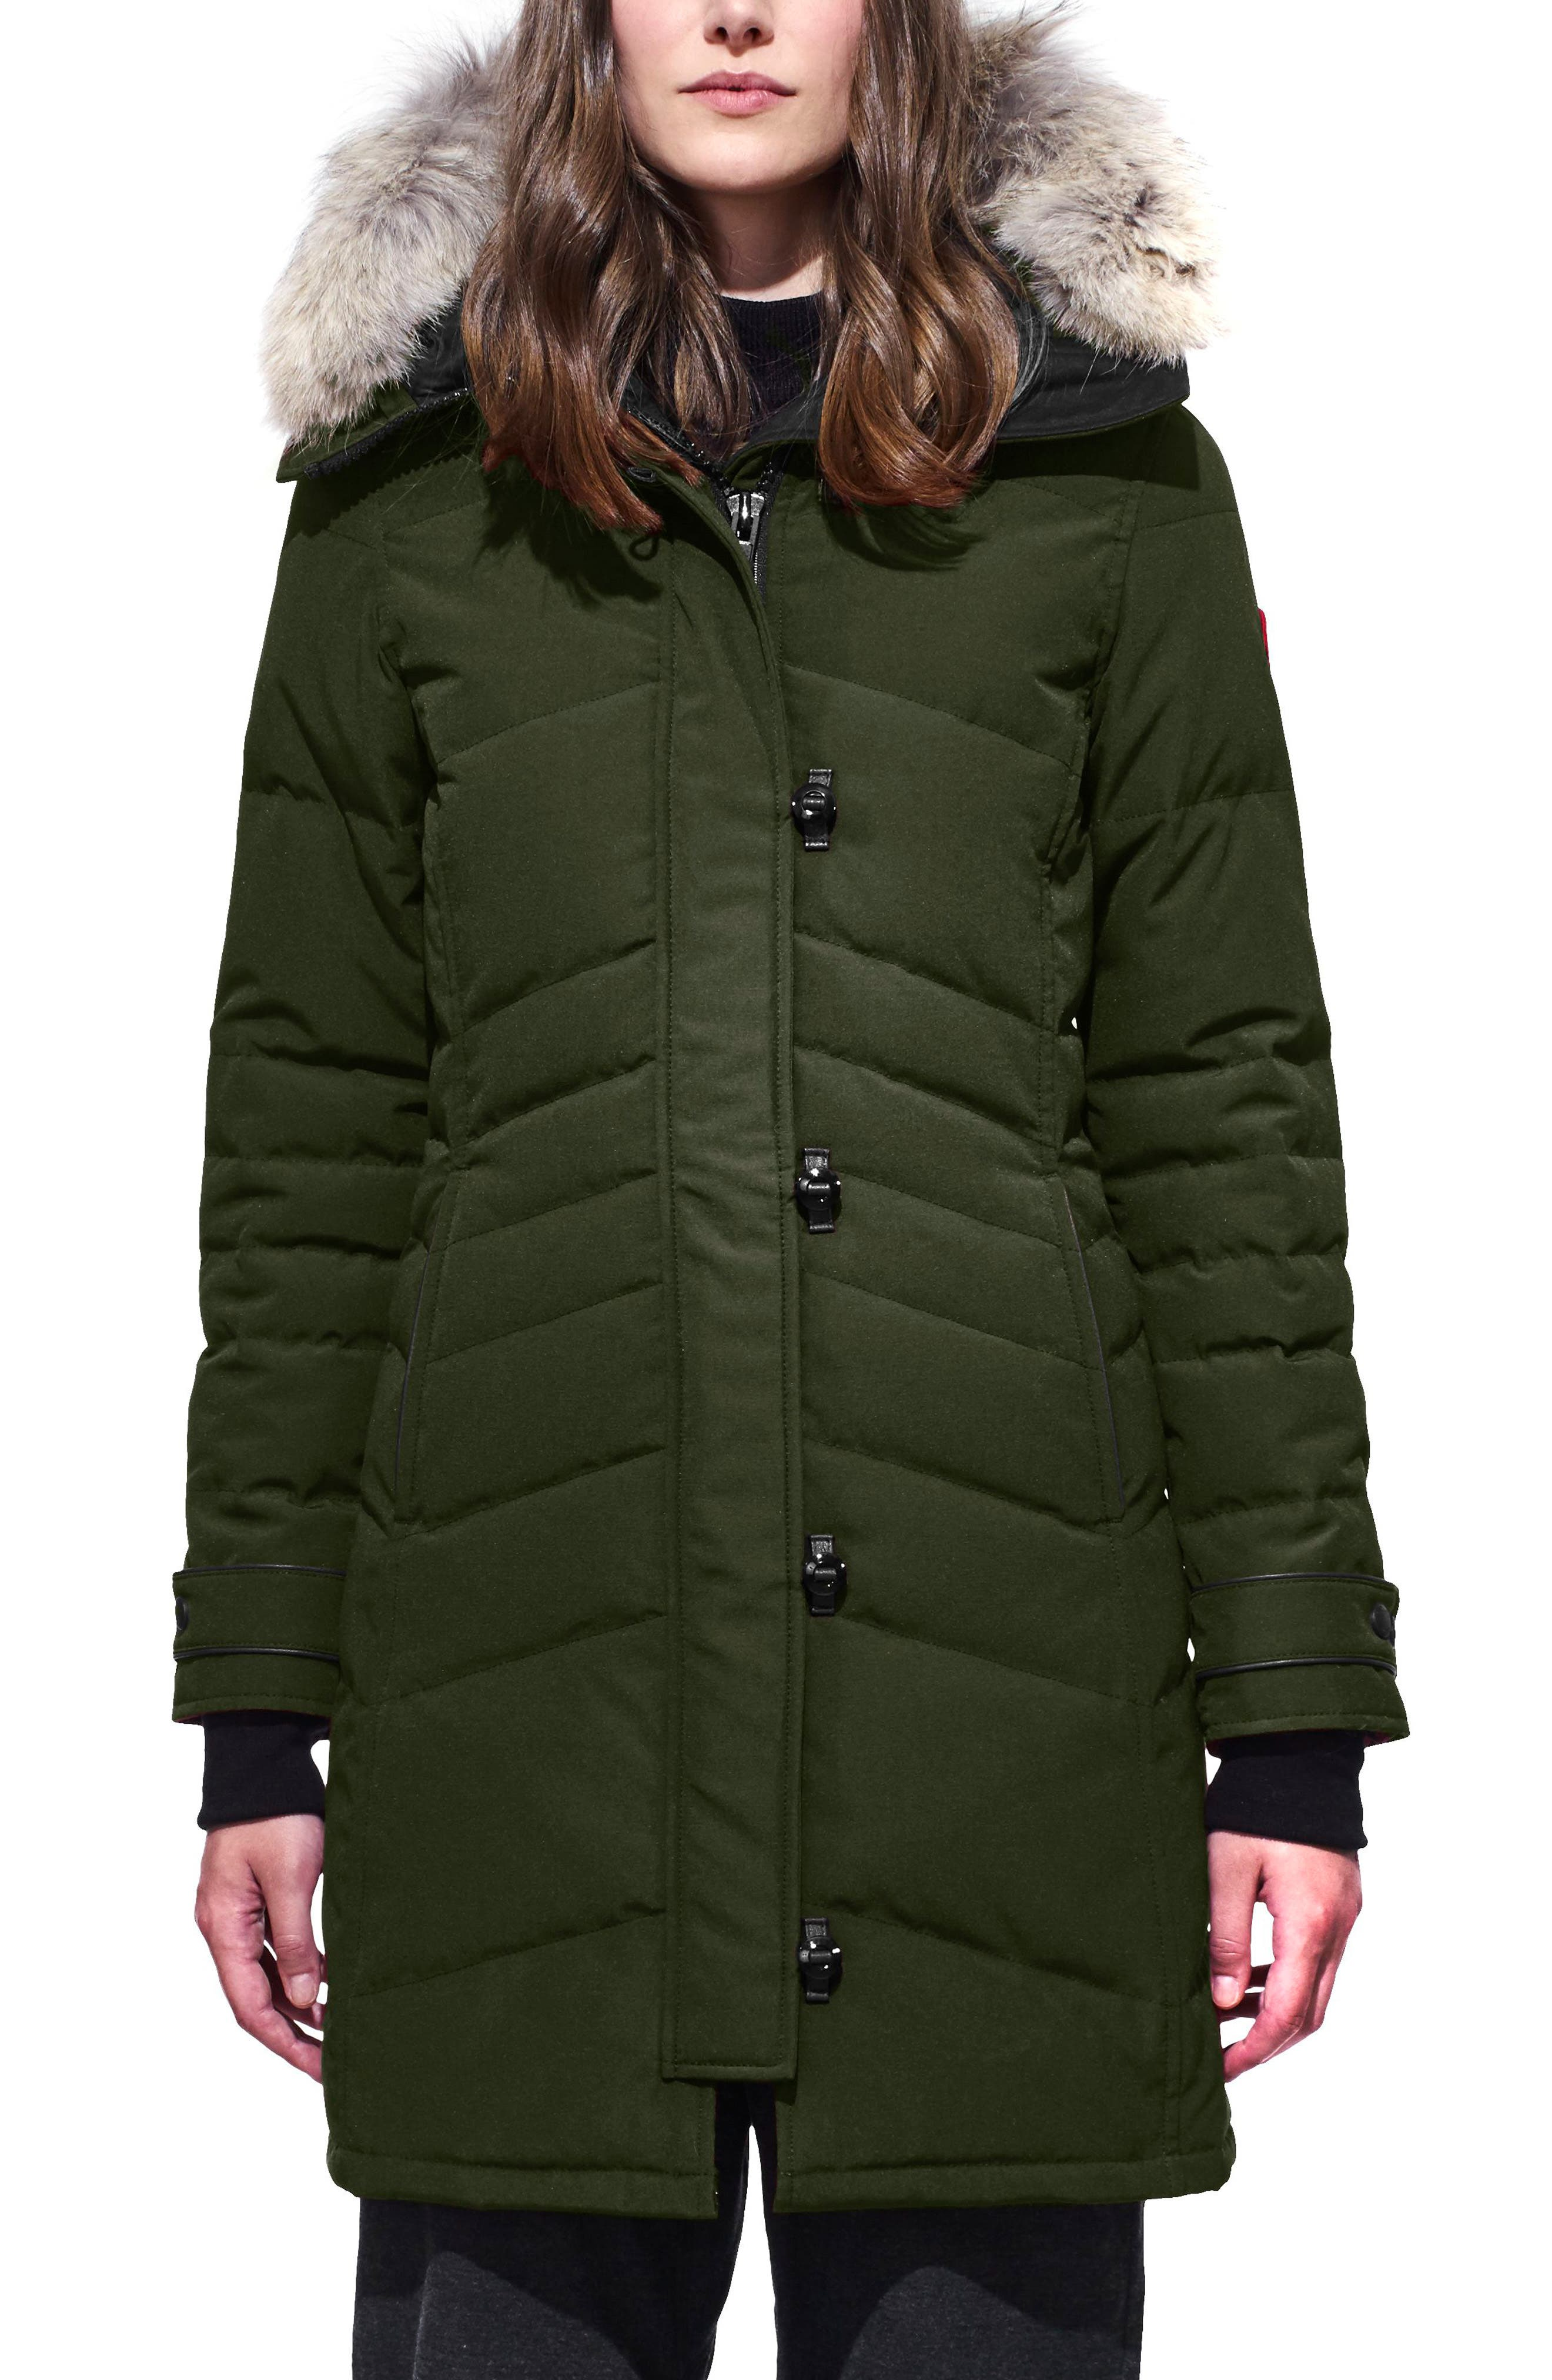 Alternate Image 1 Selected - Canada Goose 'Lorette' Hooded Down Parka with Genuine Coyote Fur Trim